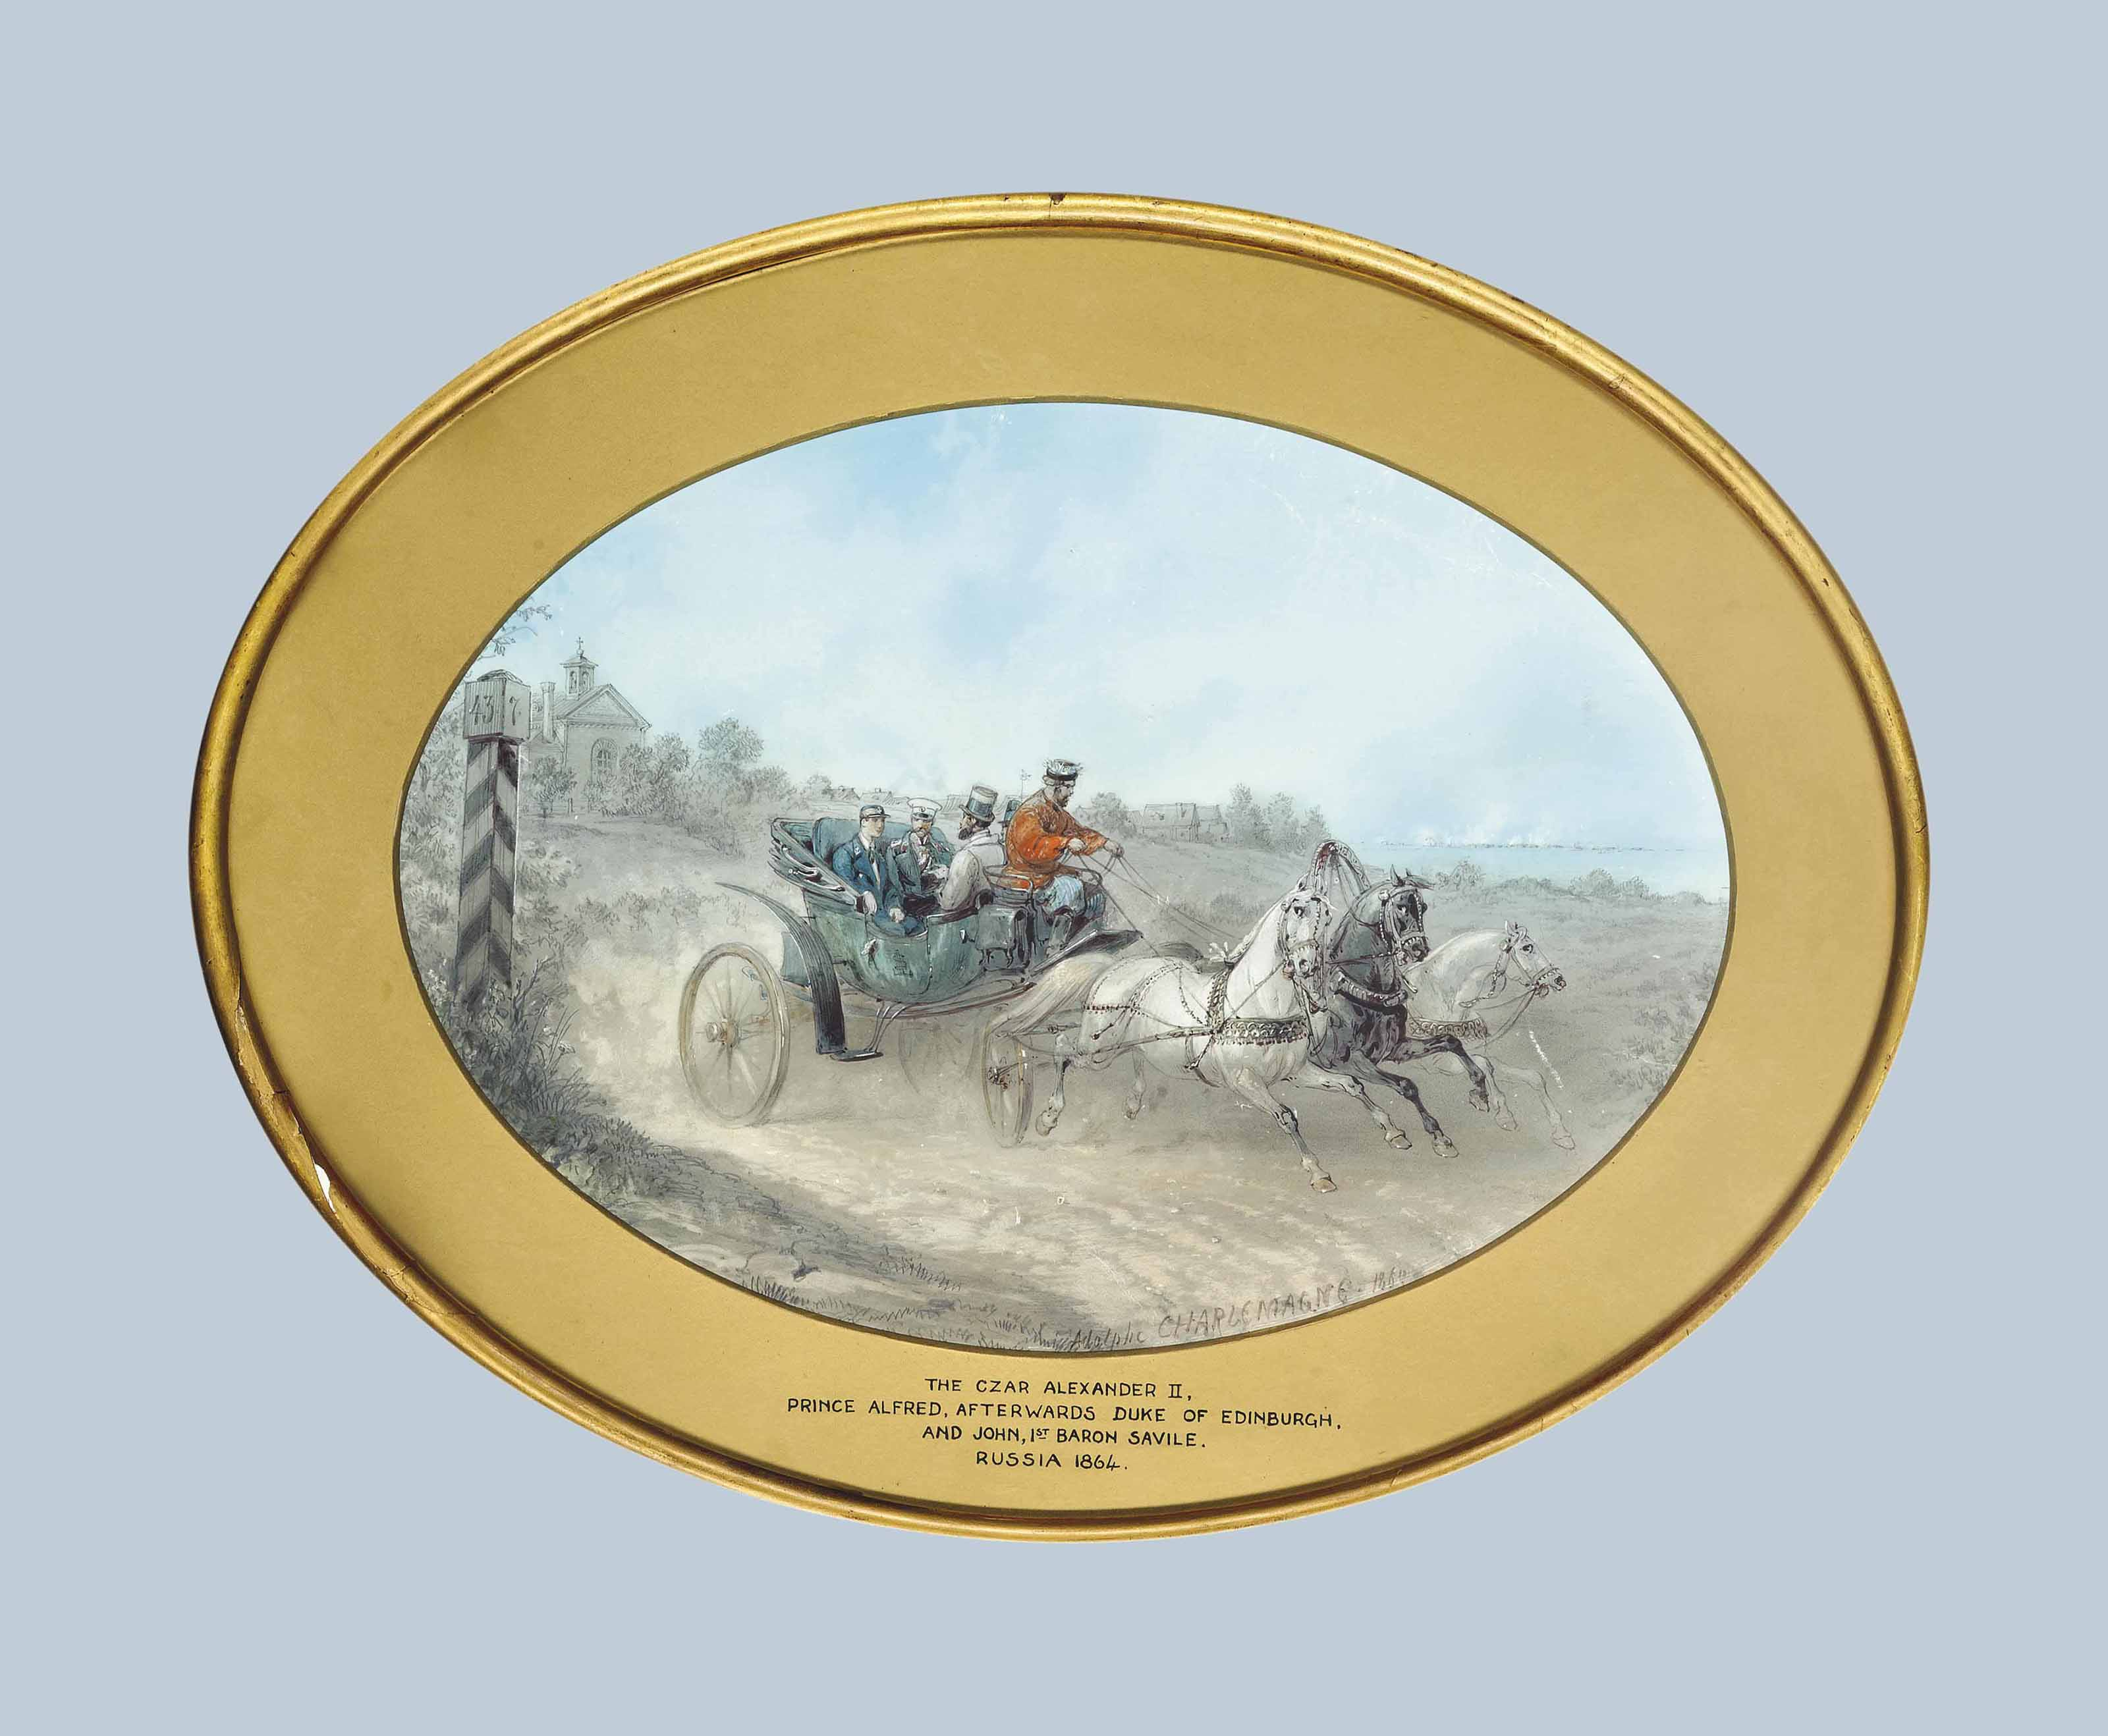 A group traditionally identified as Czar Alexander II, Prince Alfred, afterwards Duke of Edinburgh and John Savile 1st Baron Savile of Pontefract riding in a carriage